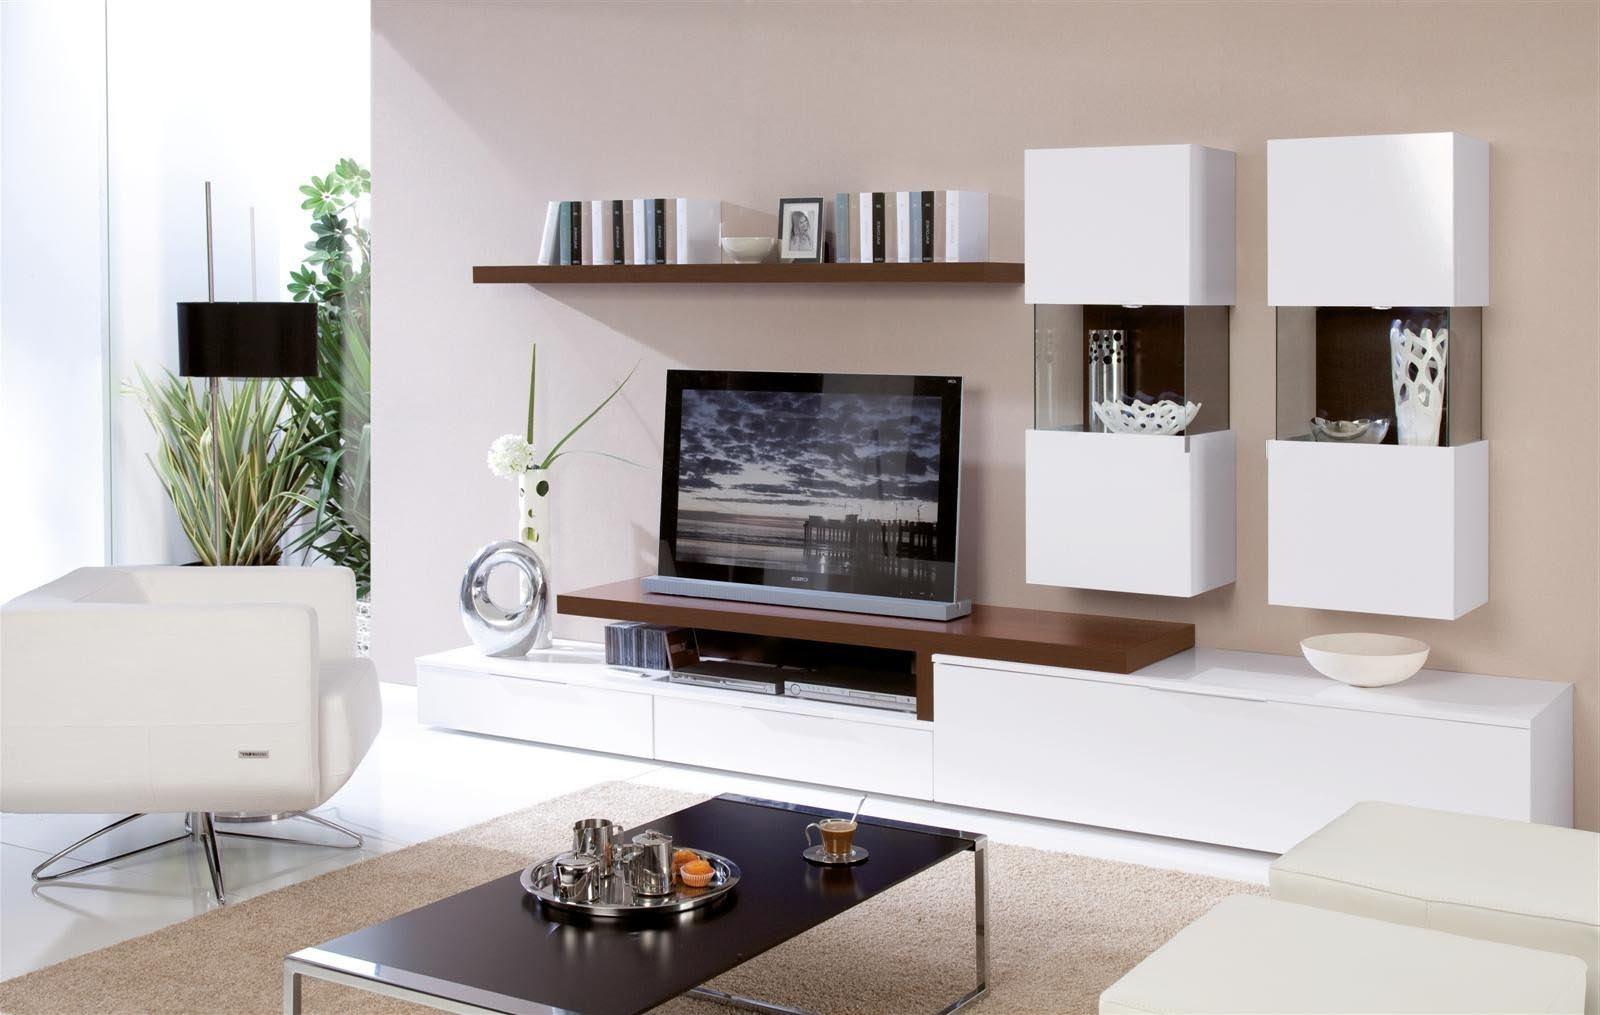 Modern Wall Mounted Shelves Design inside Stunning Living Room with White Sofa and Black Table